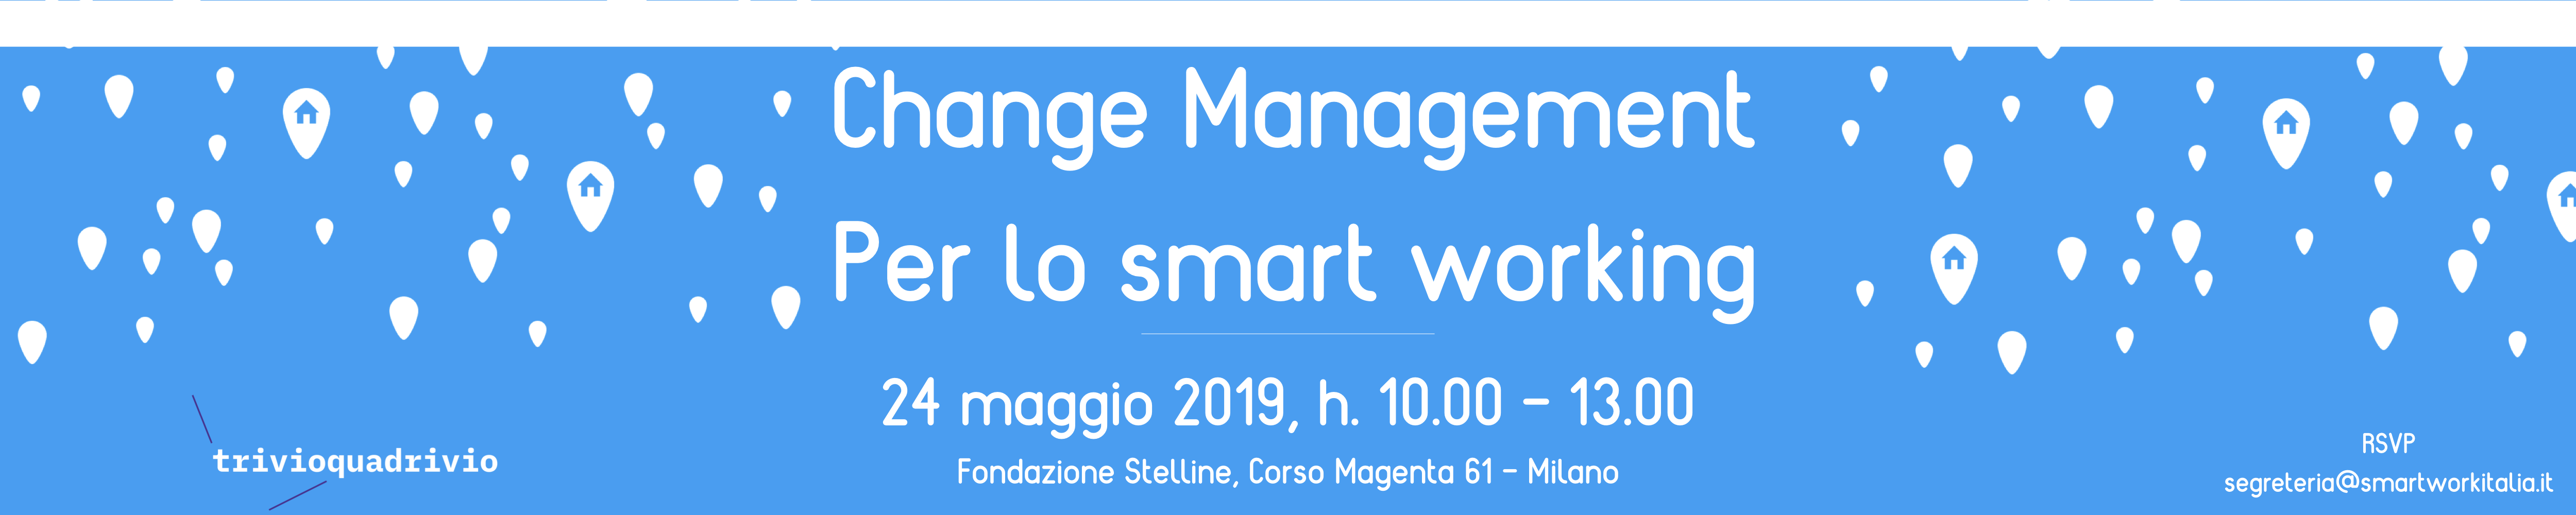 Change Management per lo Smart Working